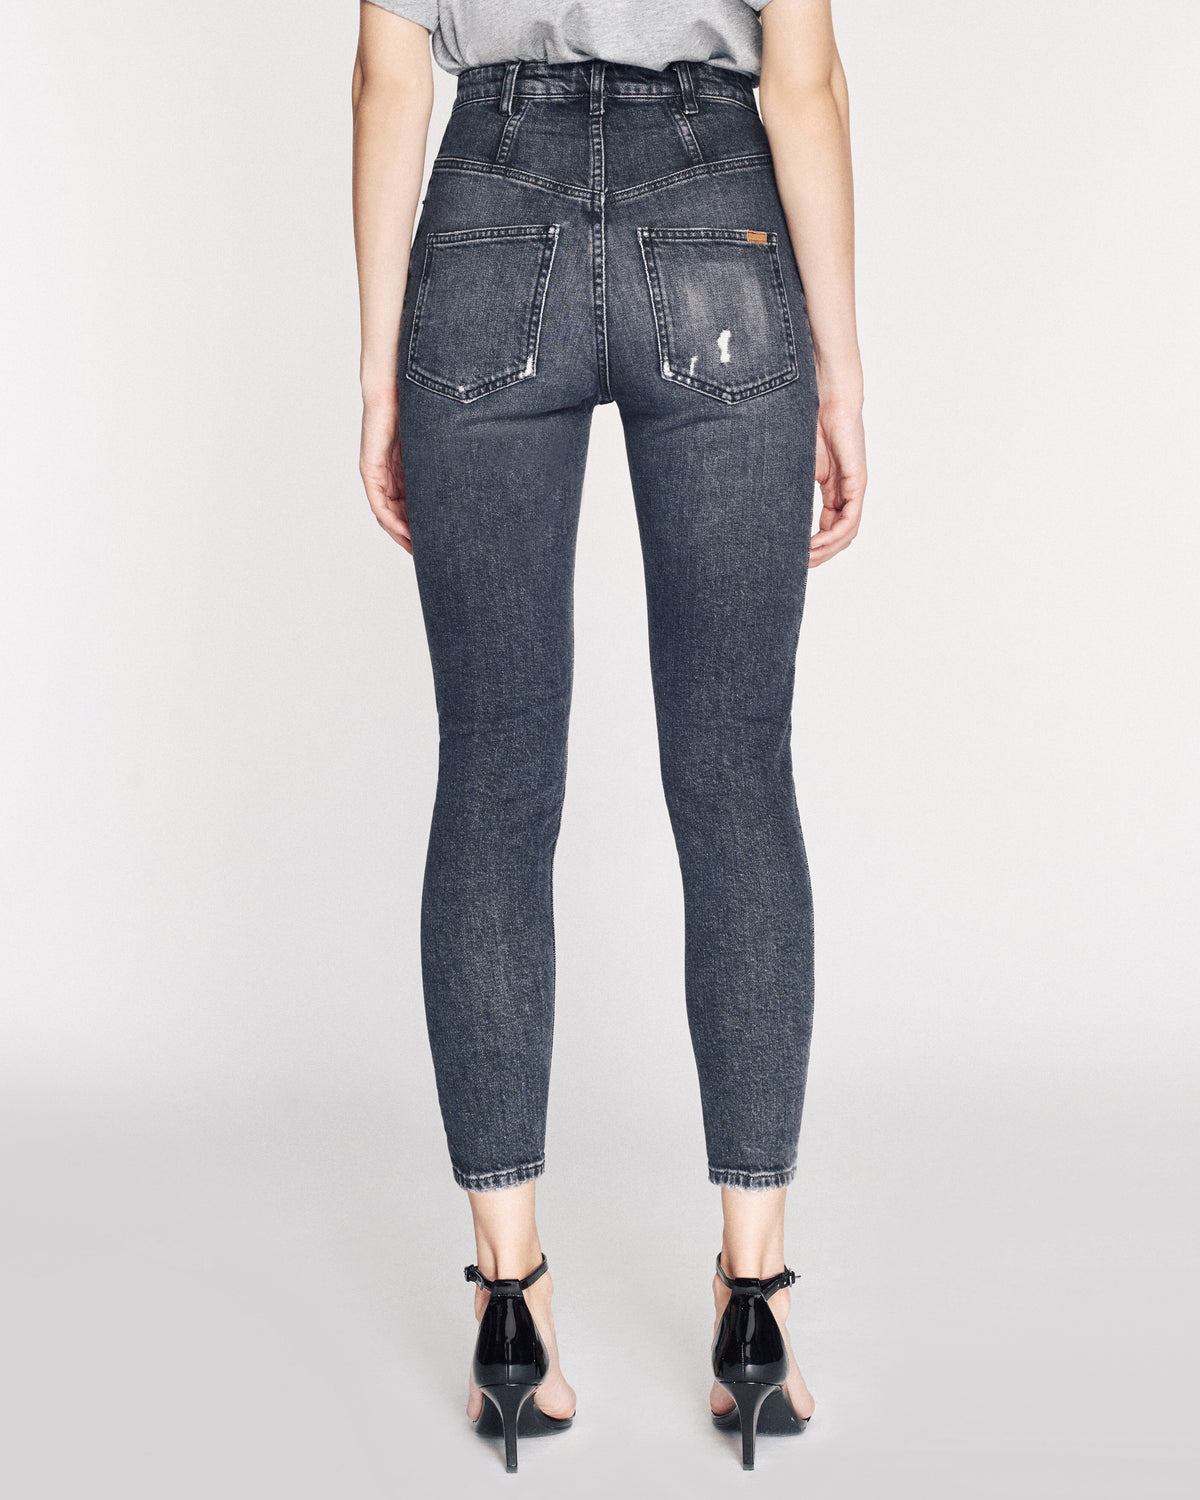 Emma Denim Pant in Faded Black Stone Wash